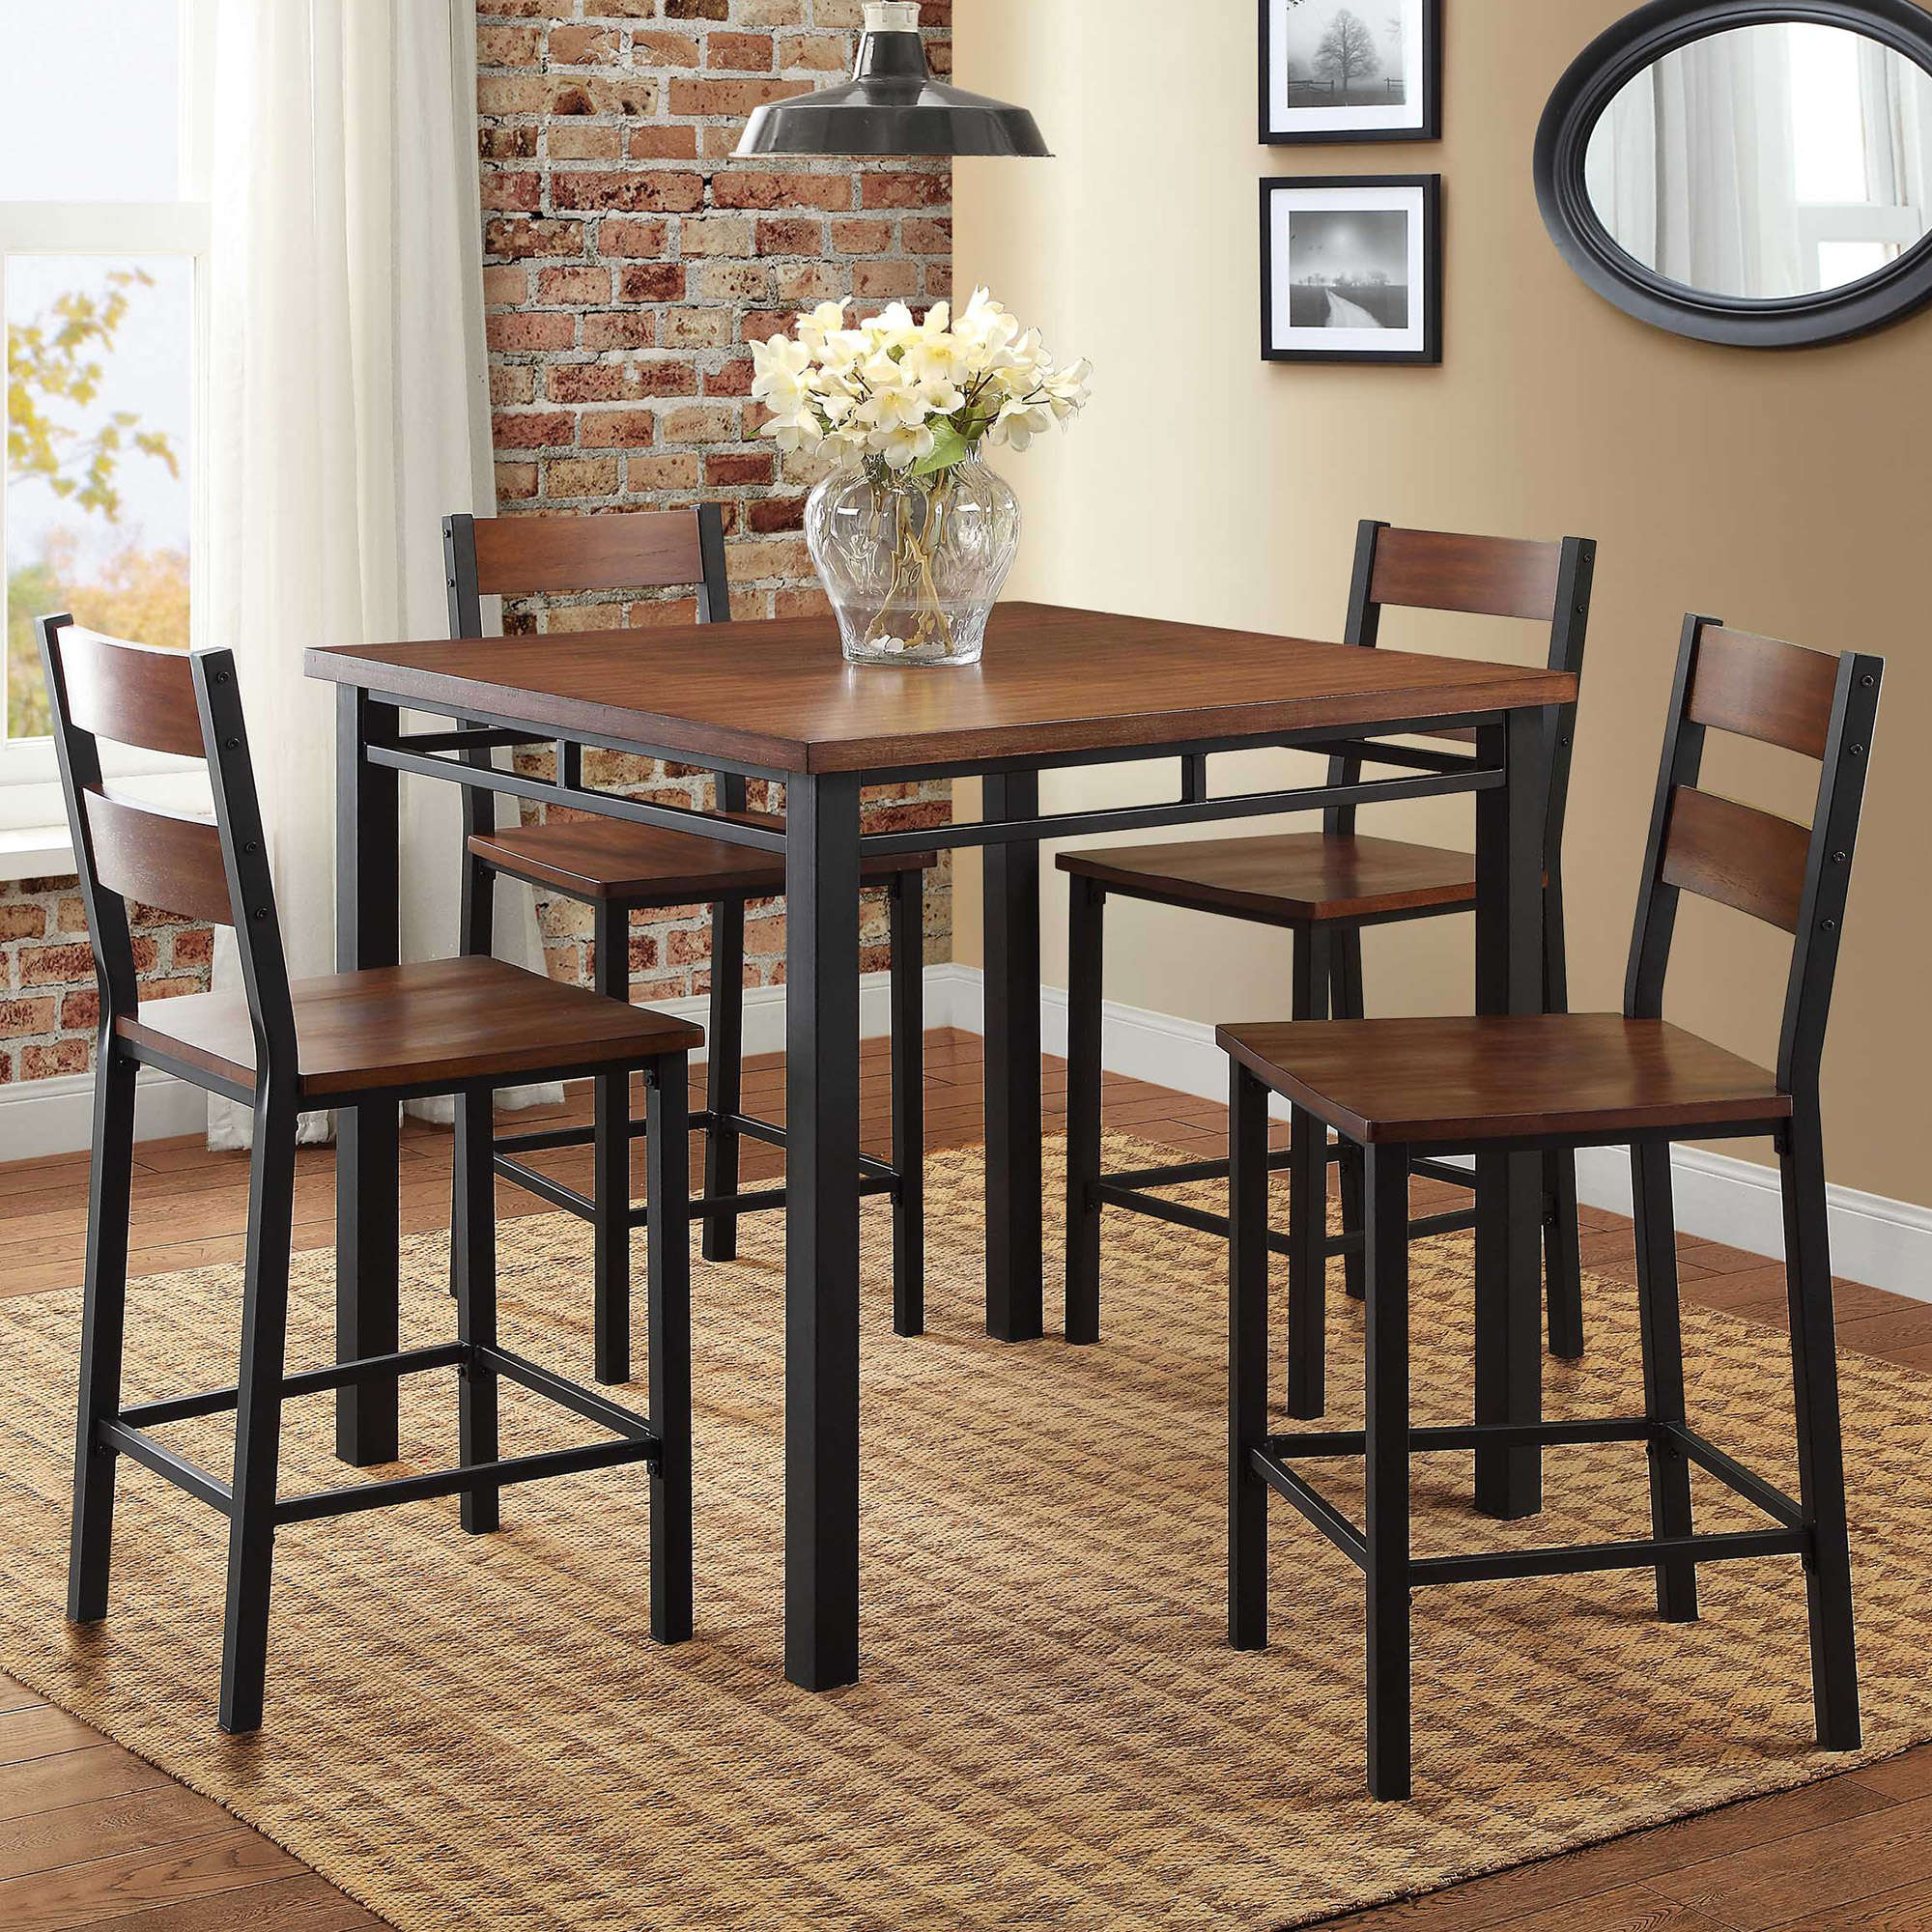 Well Known Rustic Dining Table Set High Top Counter Height Chair Kitchen Nook 5 Inside 5 Piece Breakfast Nook Dining Sets (View 20 of 25)